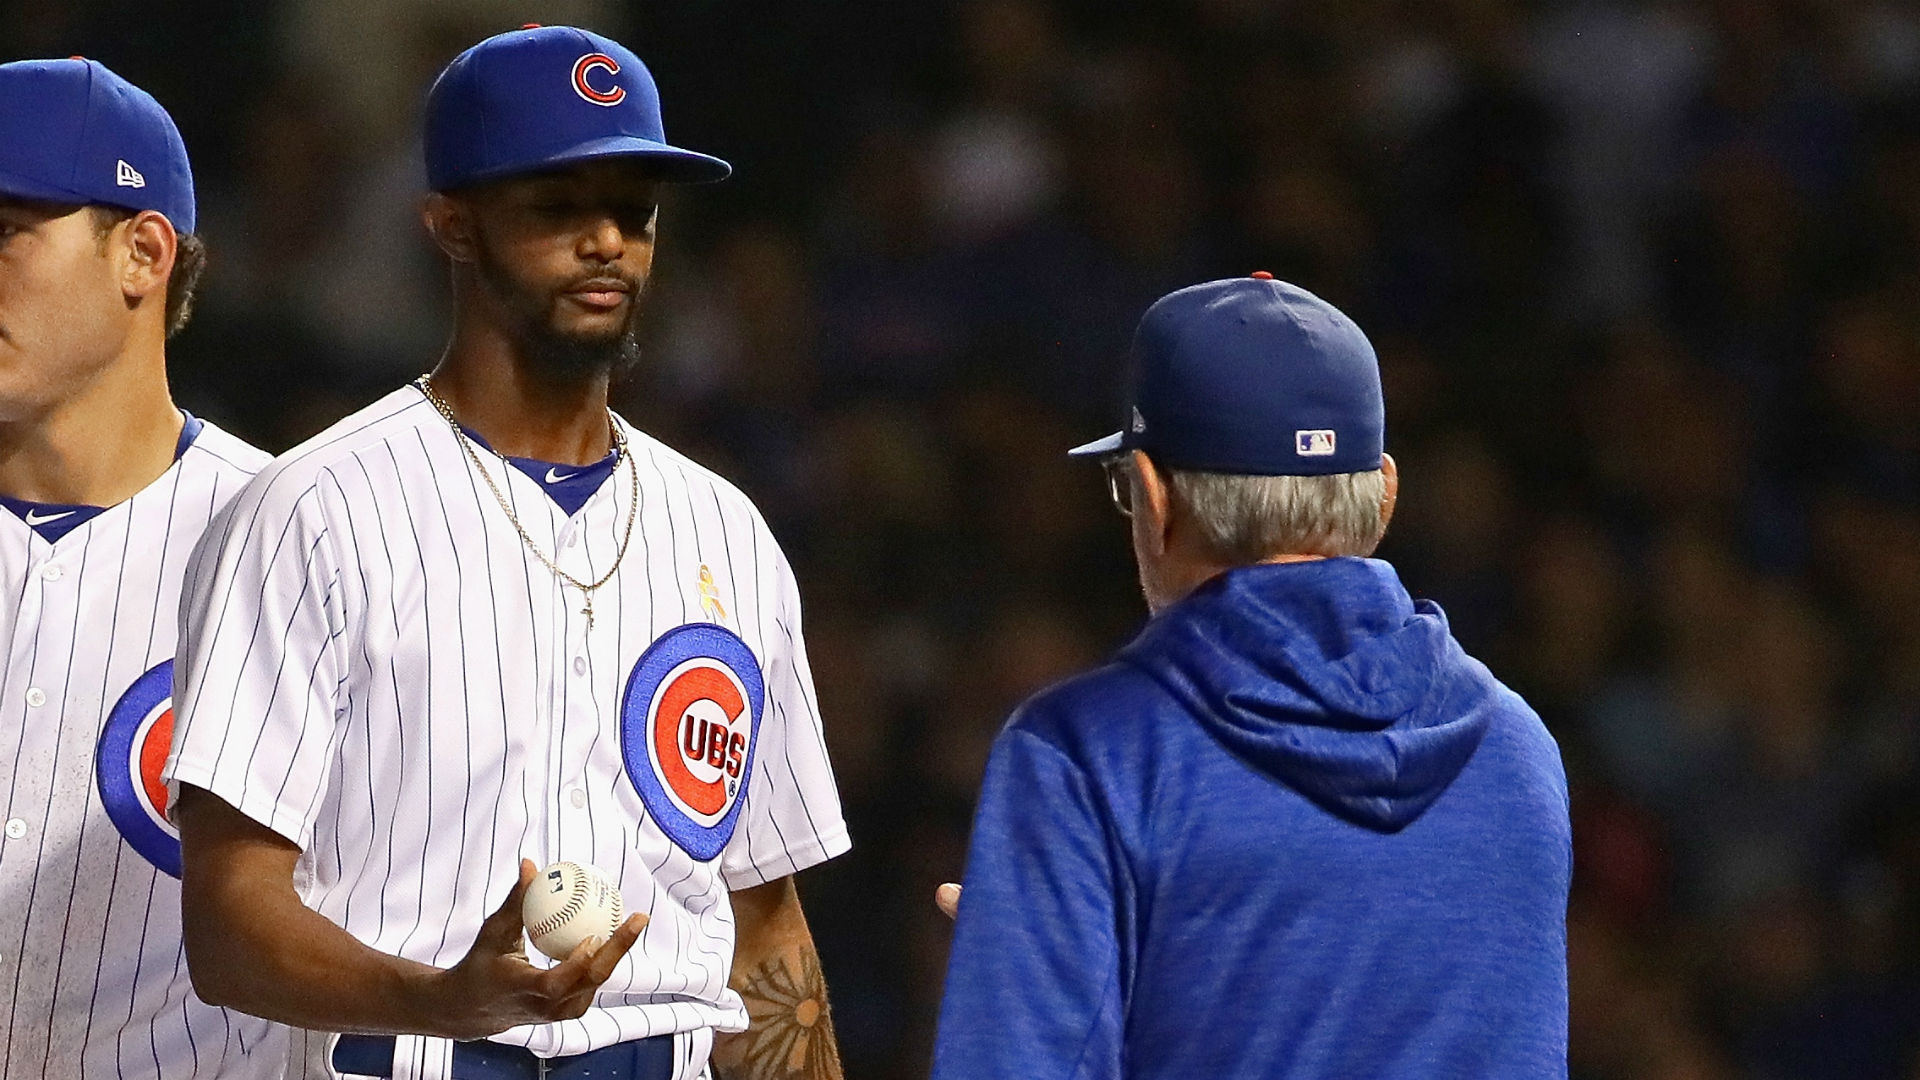 Cubs' NL wild-card game roster has Strop, not Edwards